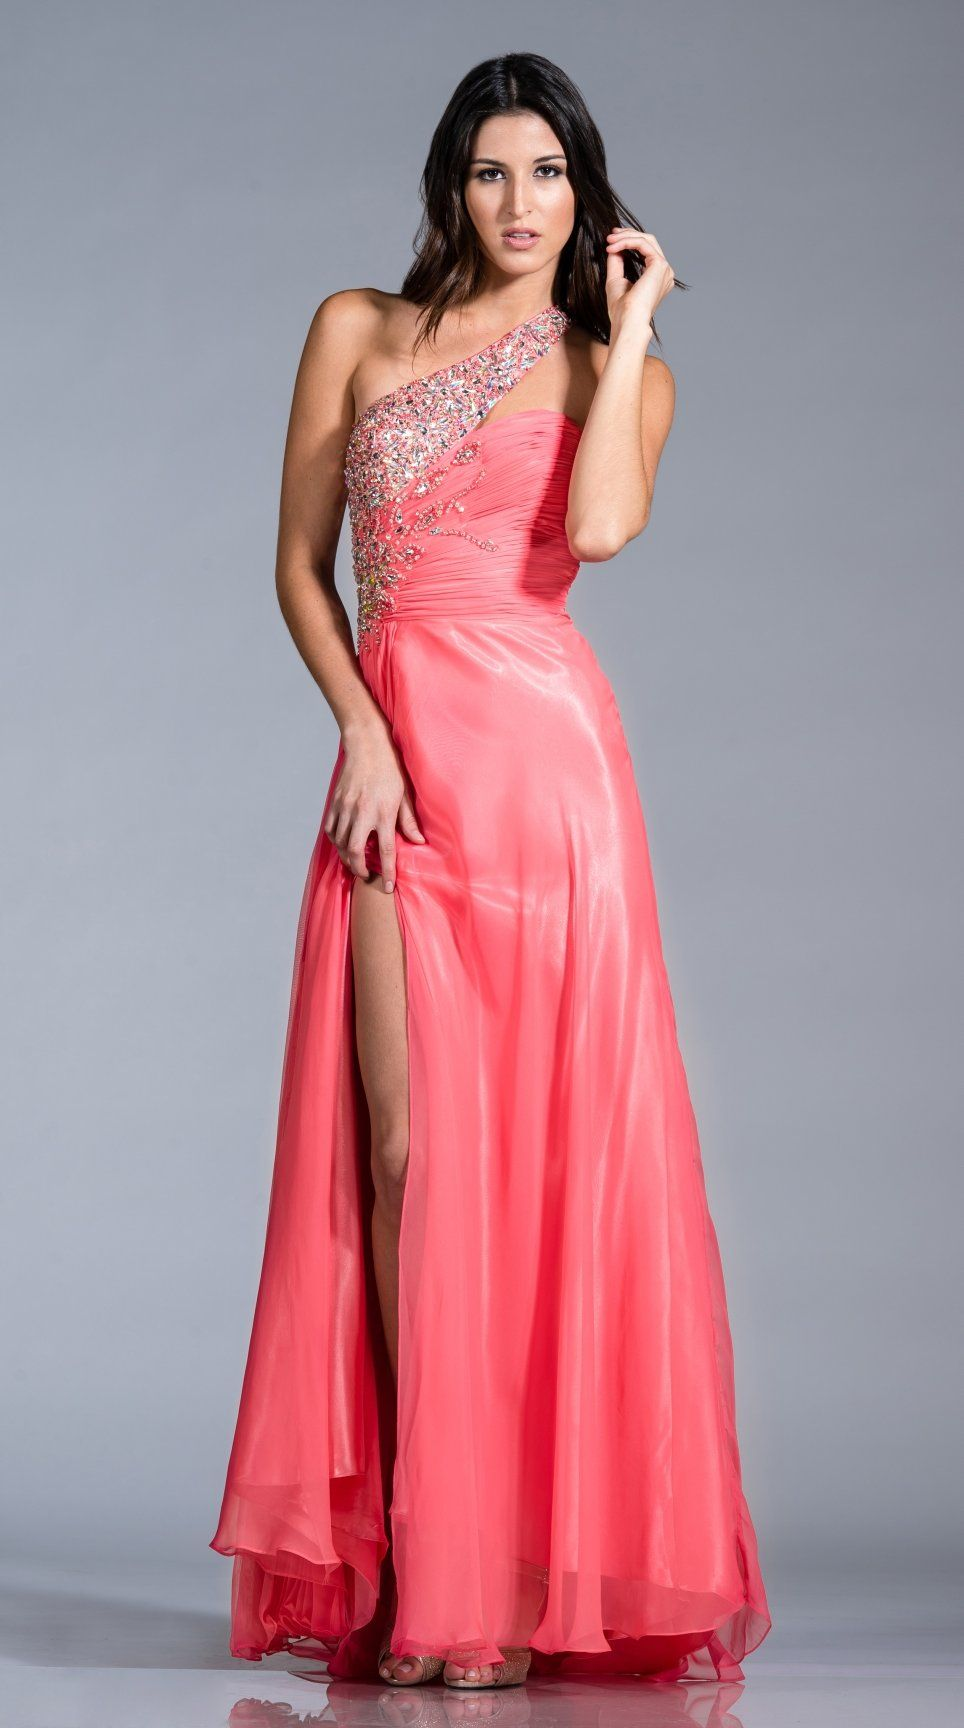 Rhinestone Shoulder Strap Coral Dress Long Chiffon Elegant Gown ...